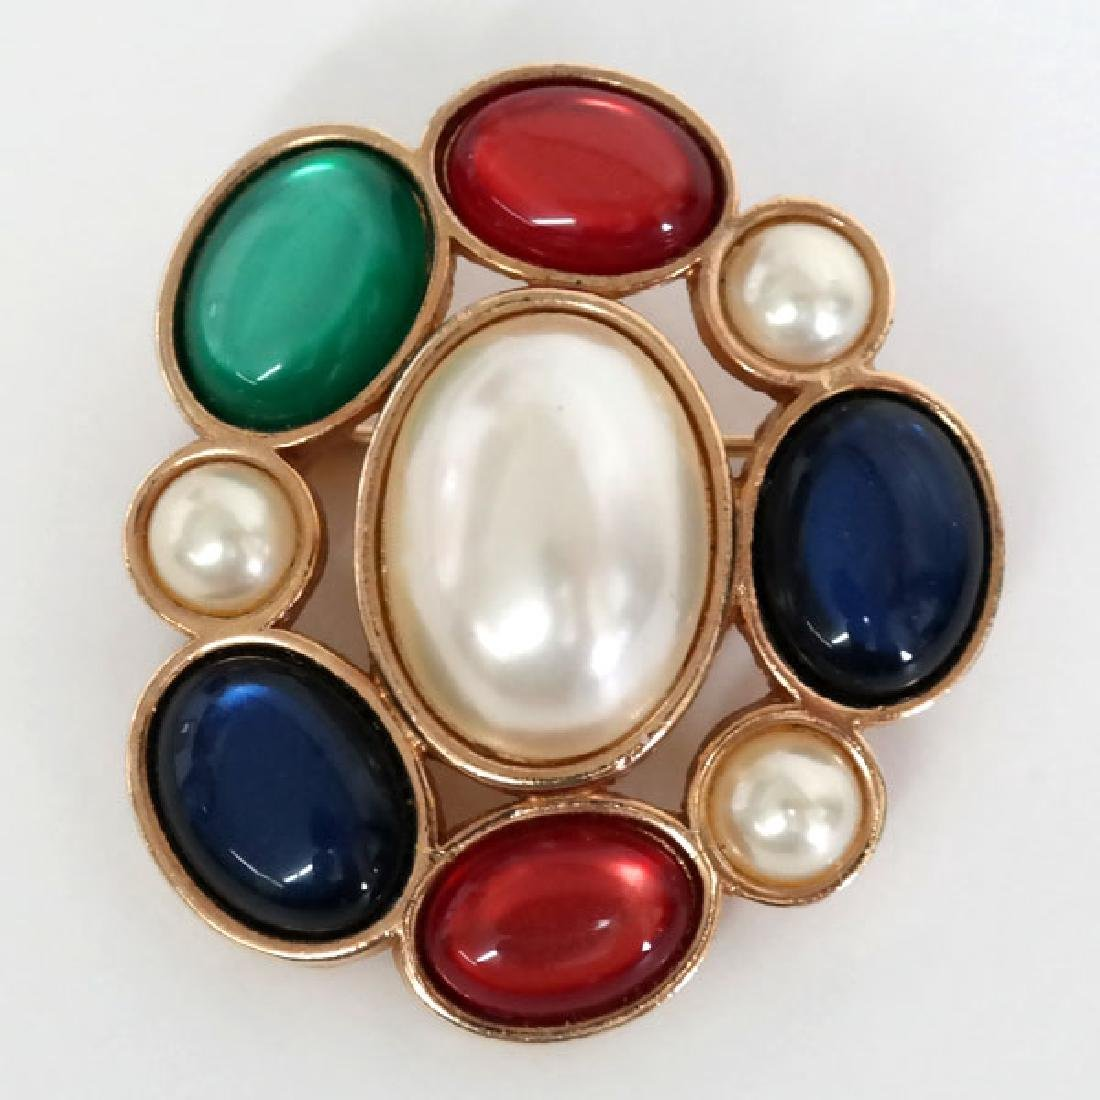 Gold plated brooch, signed AVON with multicolor